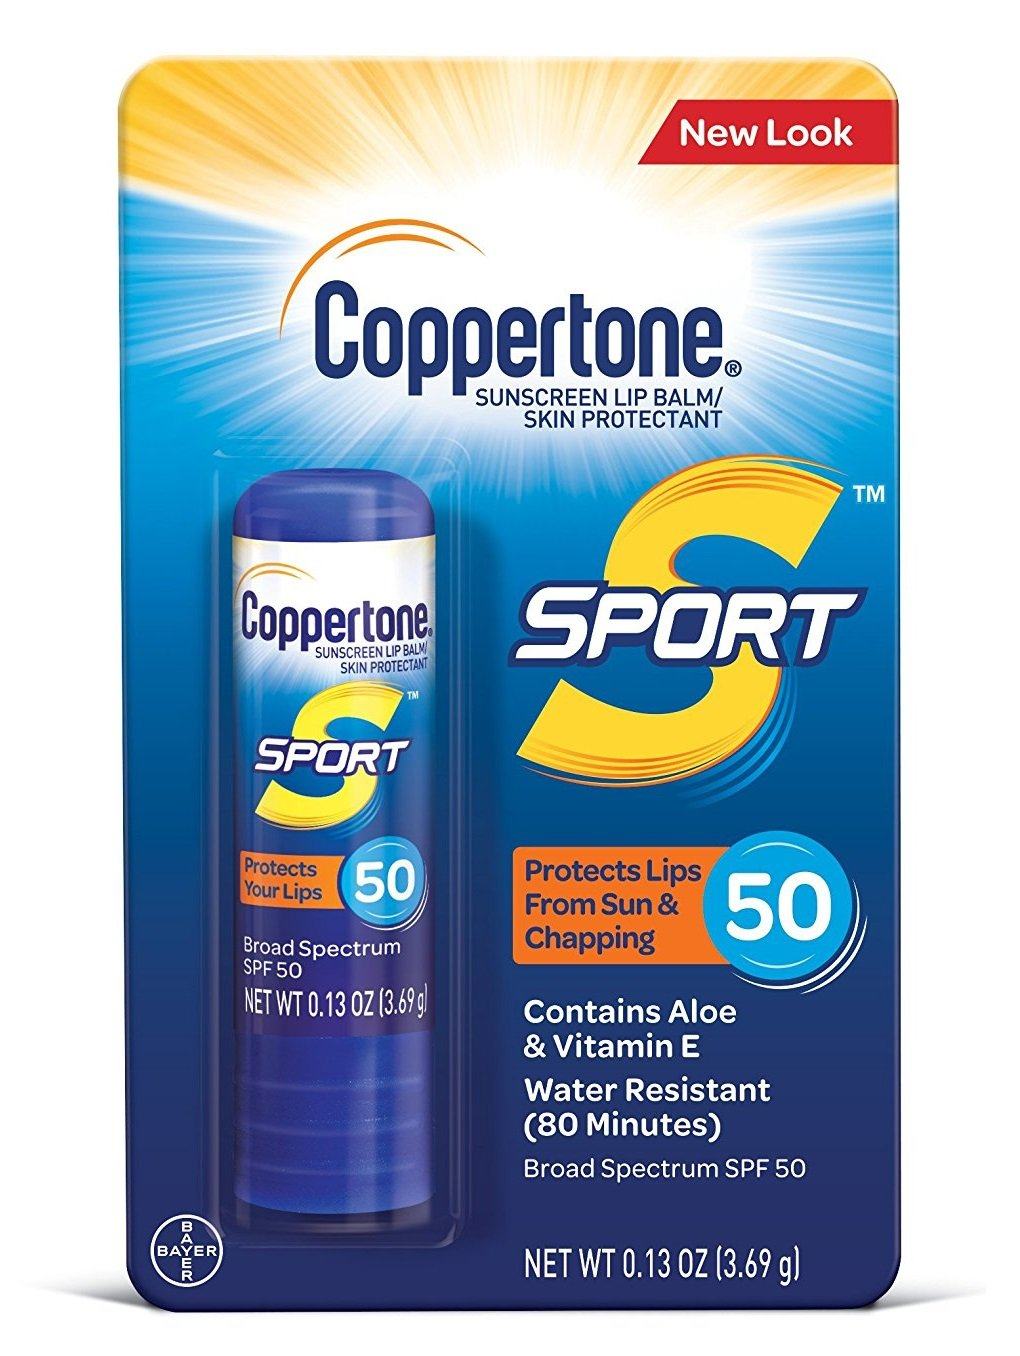 Coppertone Sport Sunscreen LipBalm, 0.13 oz, SPF 50 (Pack of 8)